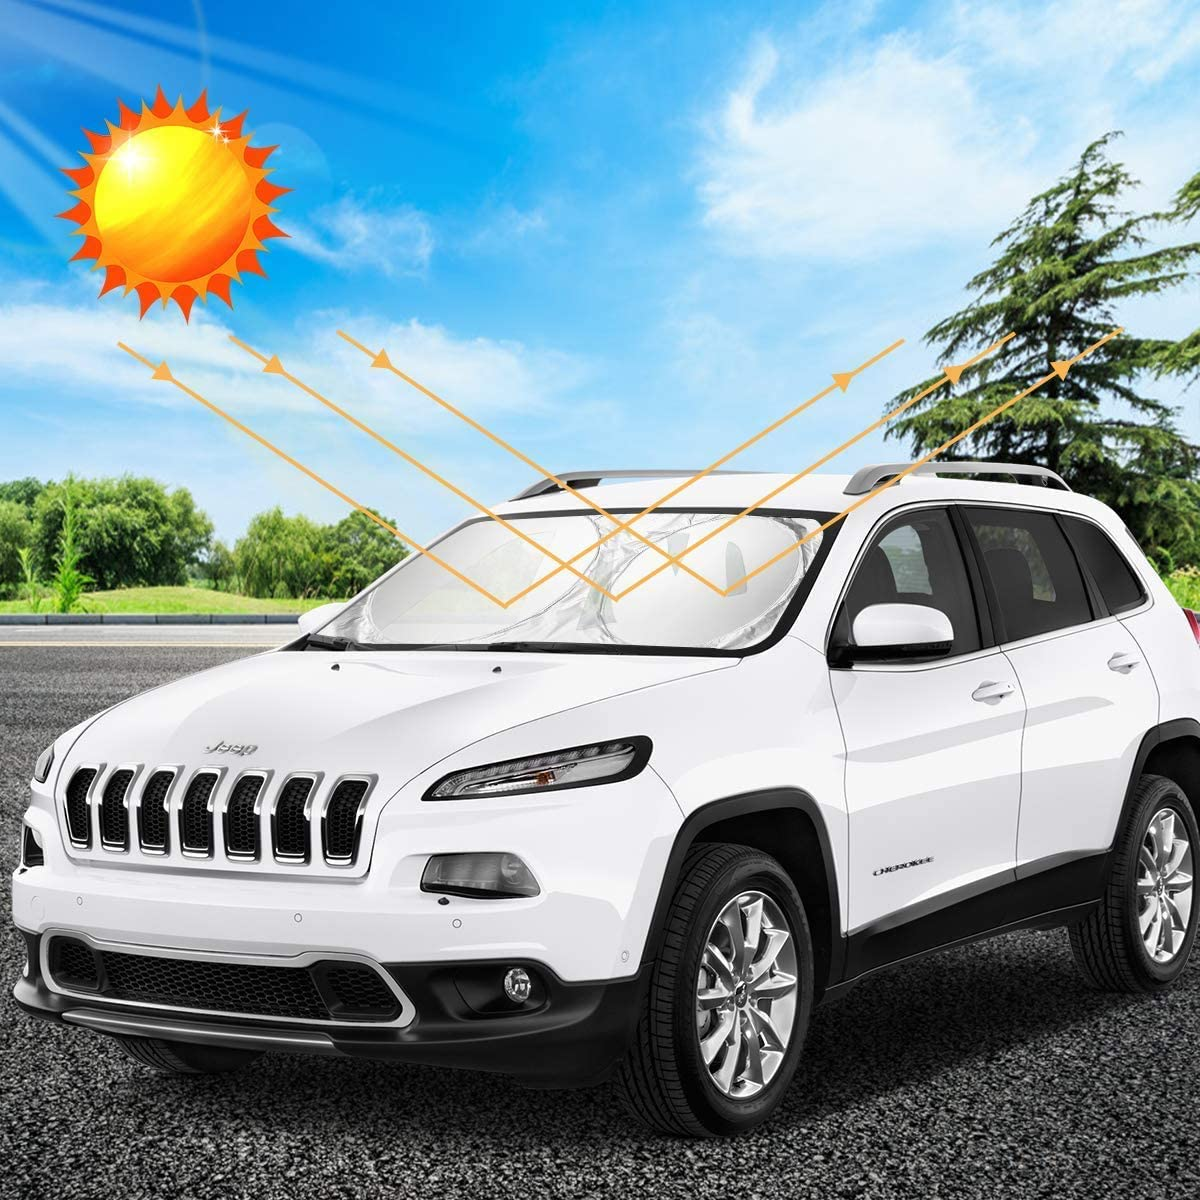 Windshield Sun Shade for SUVs Large 63x33.8 in 210T Reflective Polyester Blocks Heat and Sun Trucks and Vans Foldable Sun Shield That Keeps Your Vehicle Cool